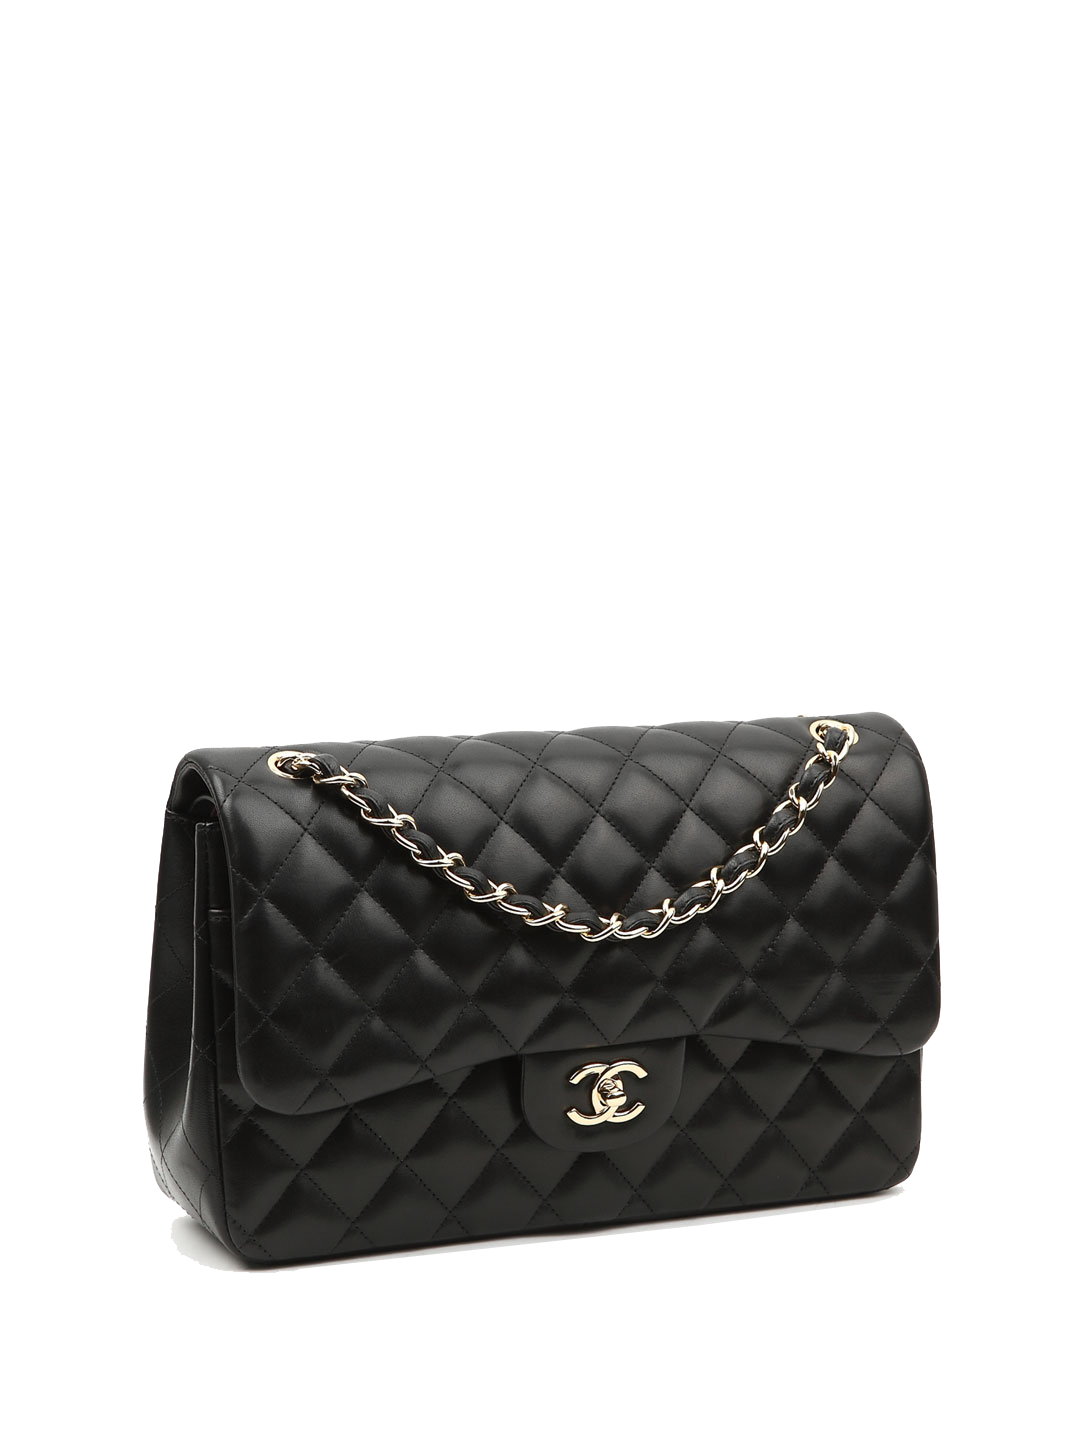 Week Fashion 2.55 Paris Bag Handbag Lingge PNG Image